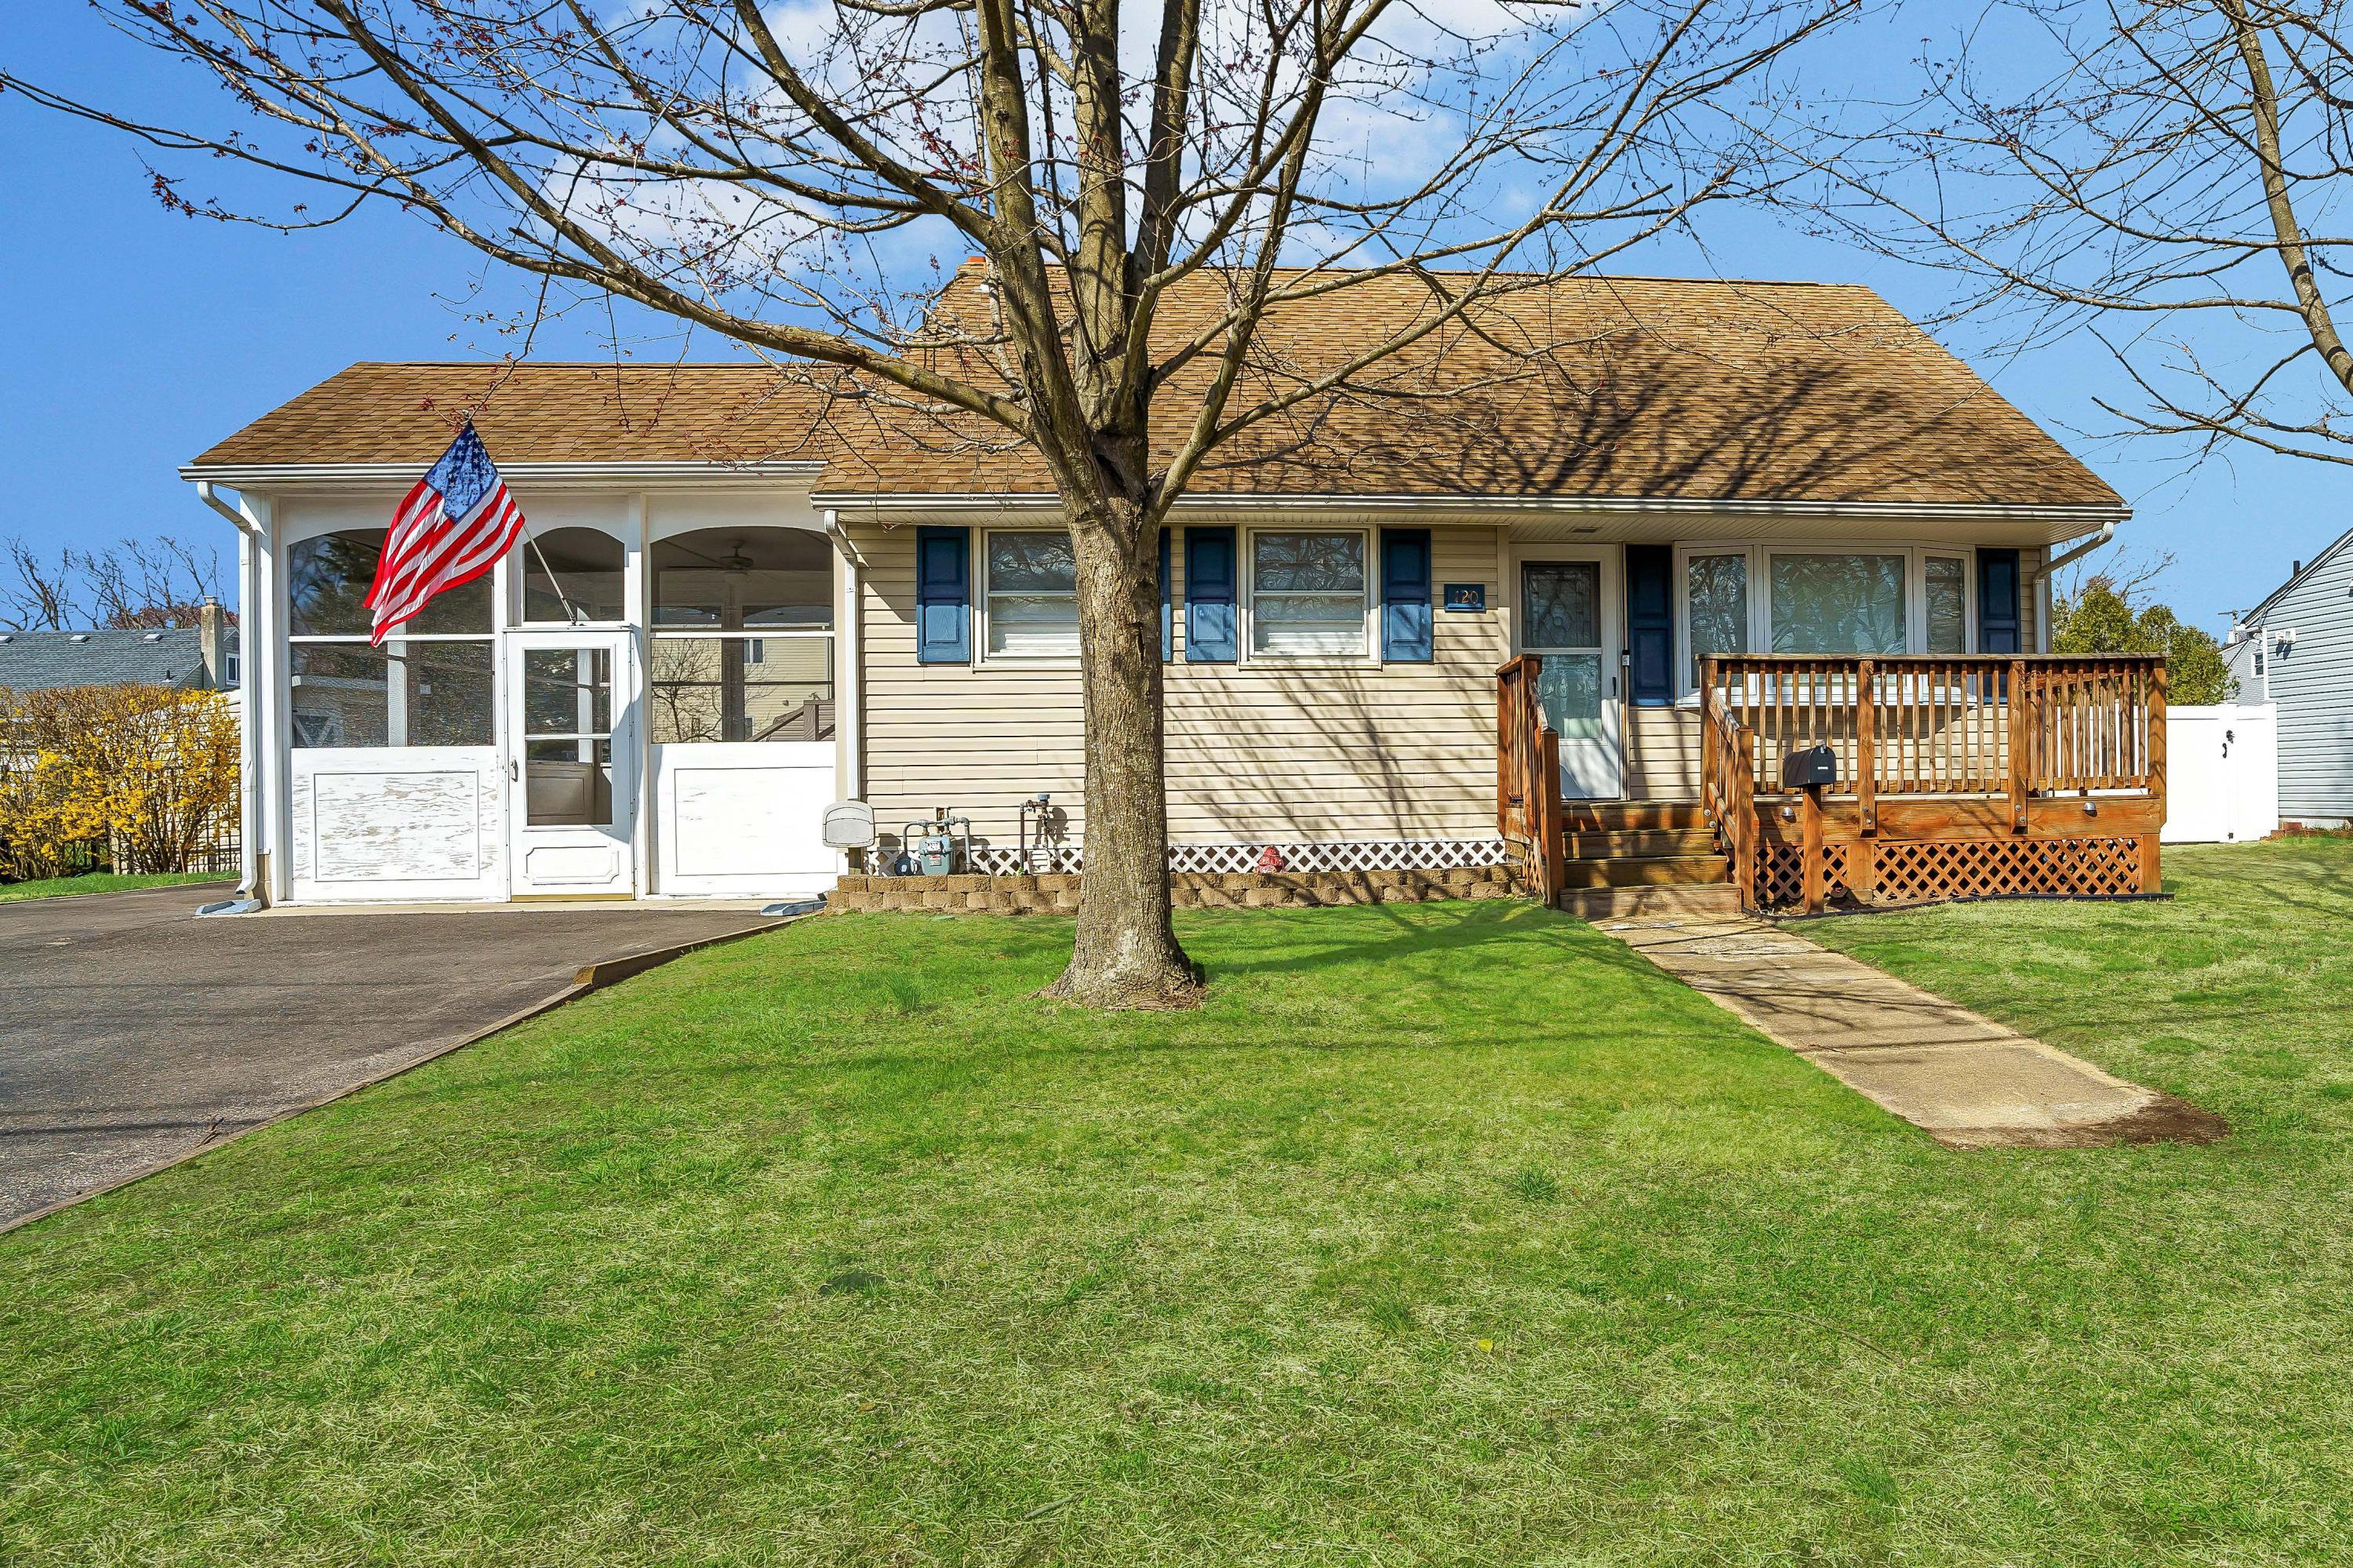 120 Hoover Drive, Brick, New Jersey 08724, 4 Bedrooms Bedrooms, ,2 BathroomsBathrooms,Single Family,For Sale,120 Hoover Drive,2,22108493